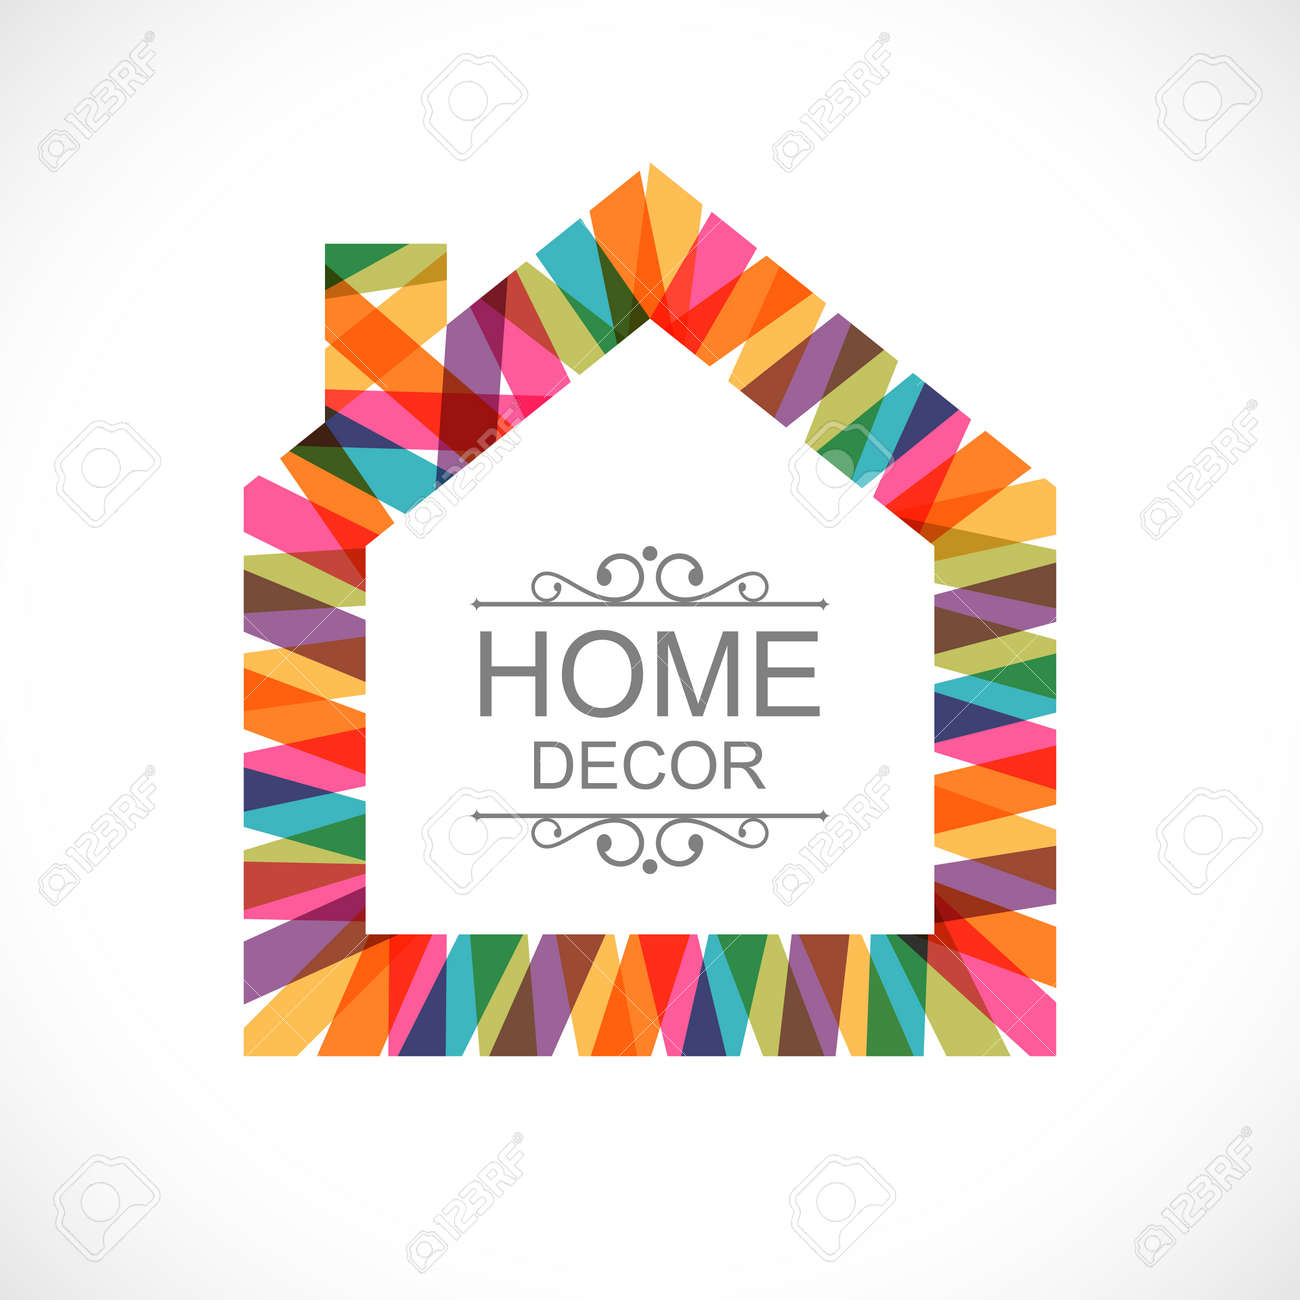 Creative House Decoration Icon Royalty Free Cliparts Vectors And